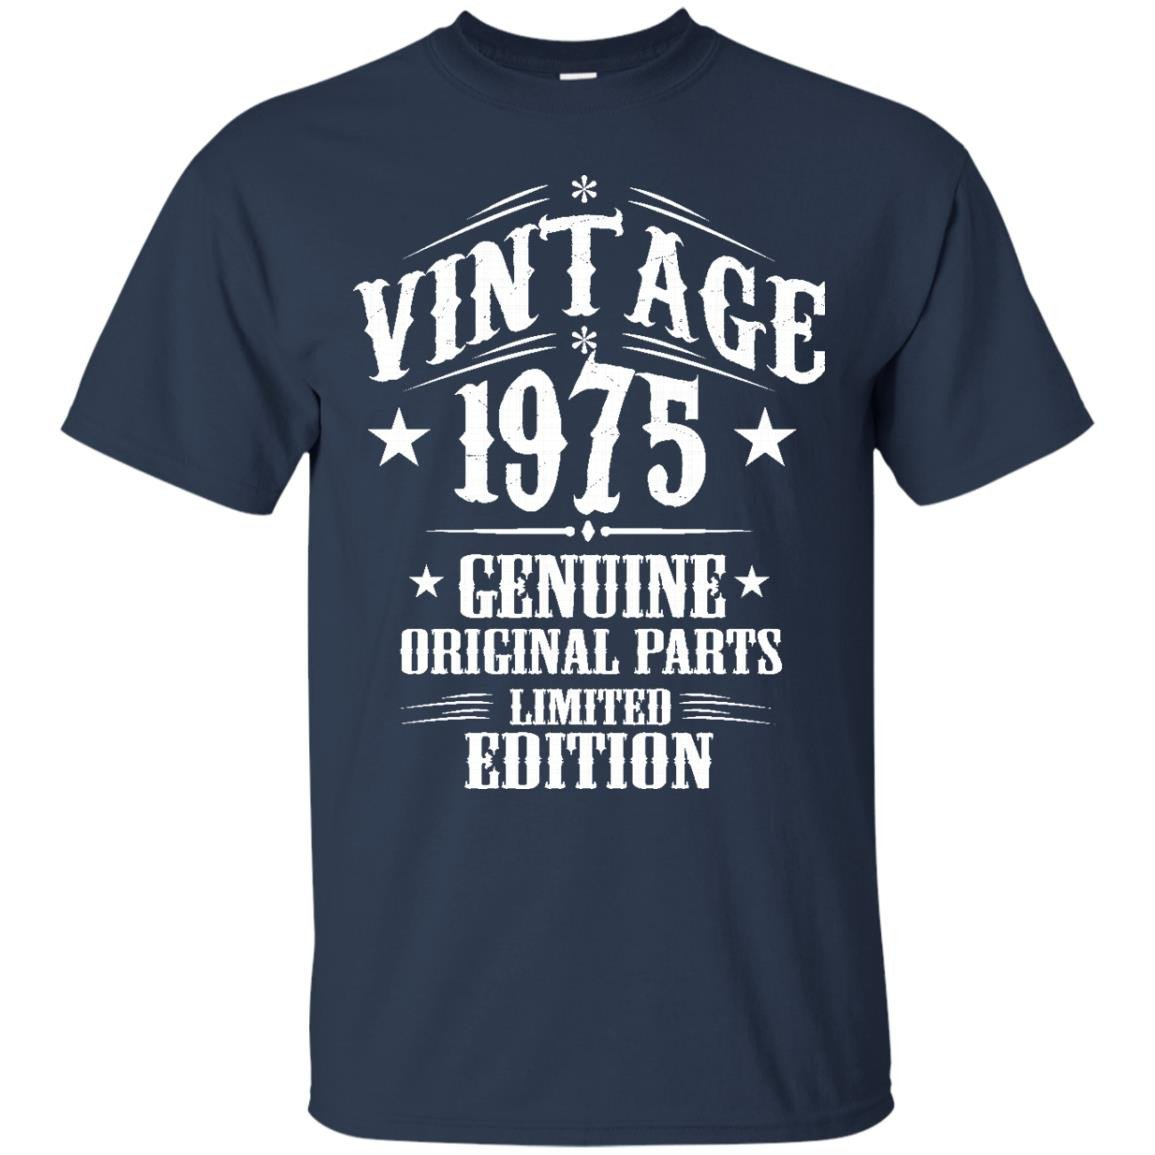 1975 Shirts Vintage Genuine Limited Edition T-shirts Hoodies Sweatshirts